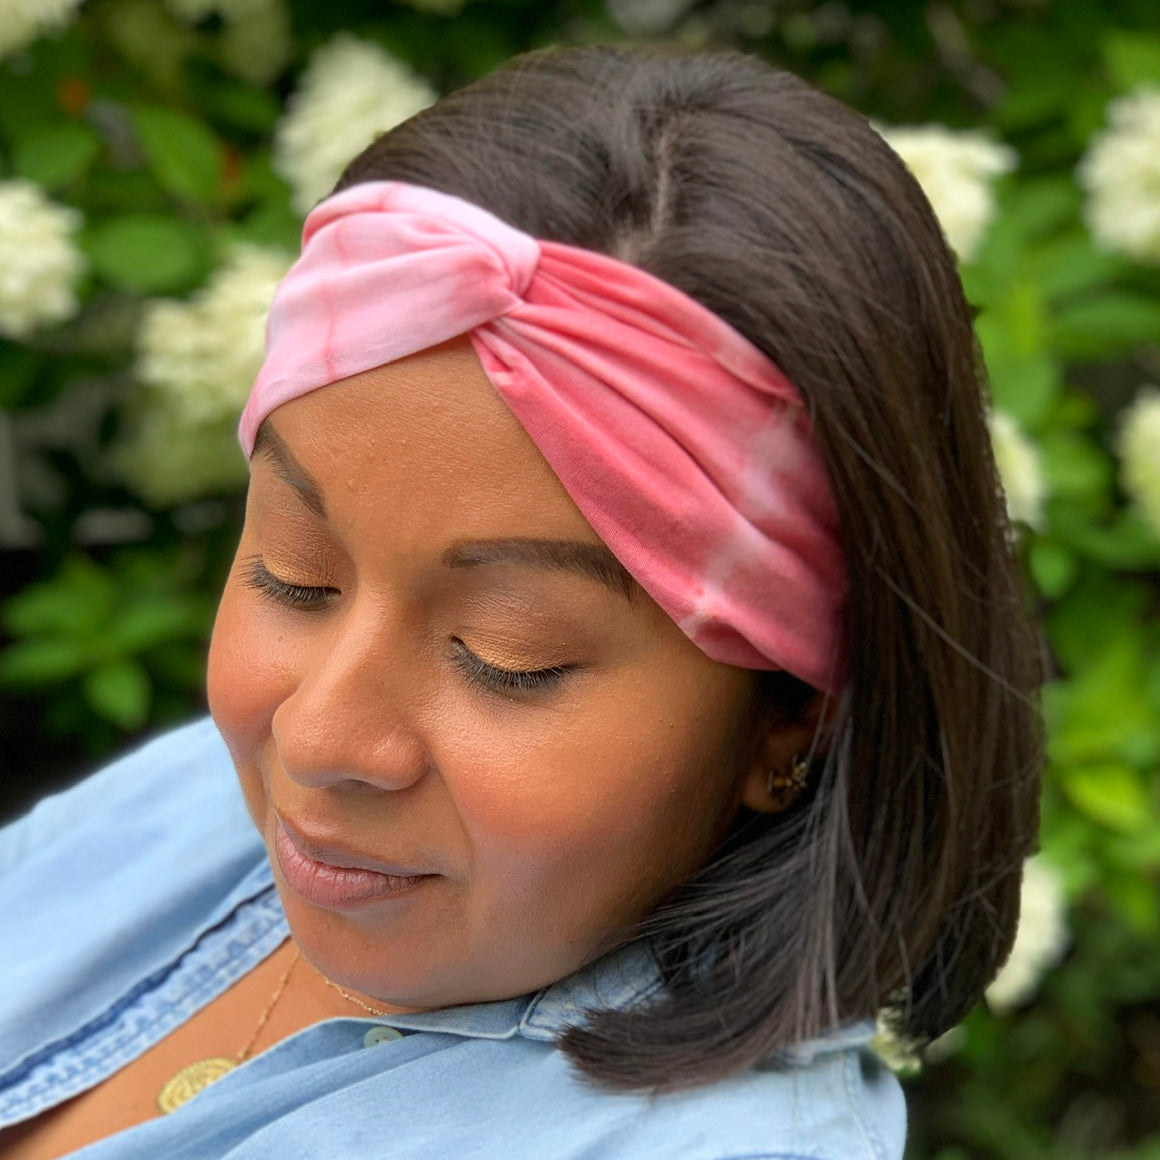 organic cotton headband dyed with natural pigments